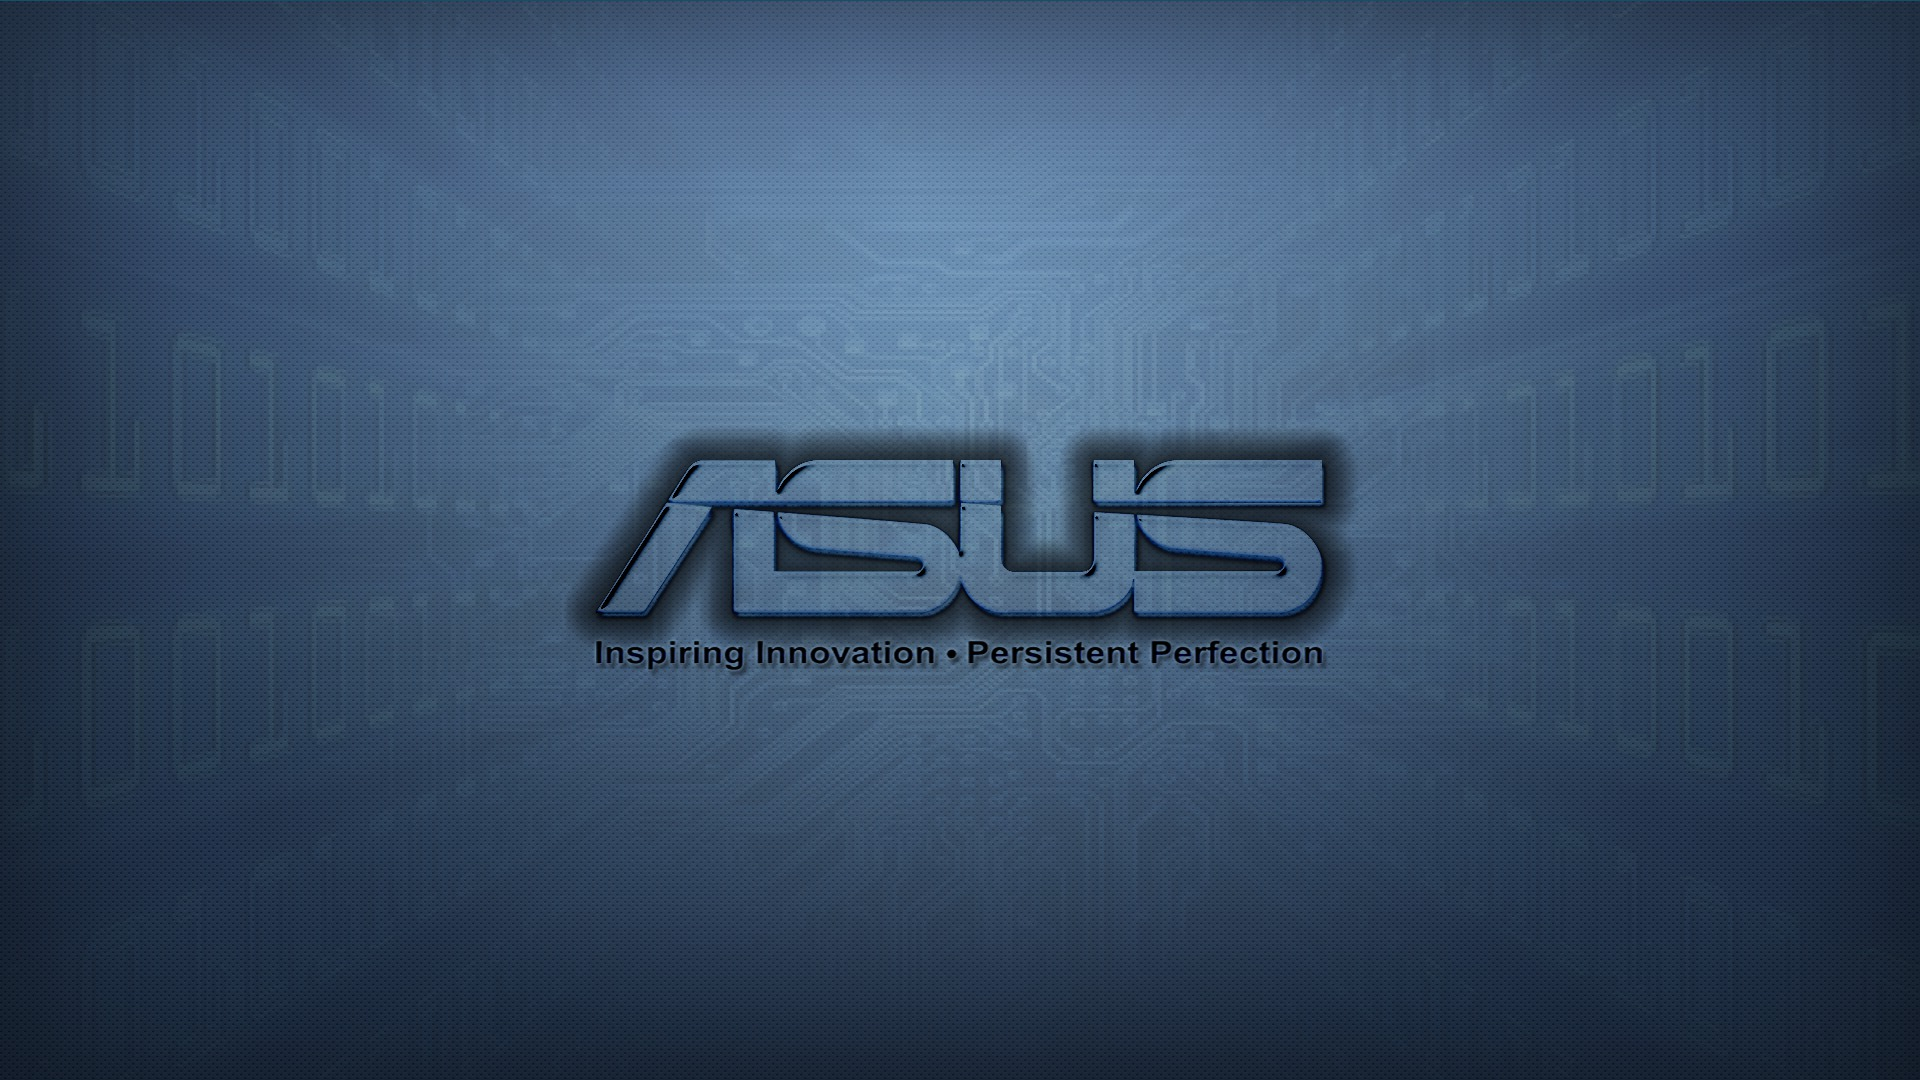 Asus Hd Wallpaper 1920X1080   1798256 1920x1080